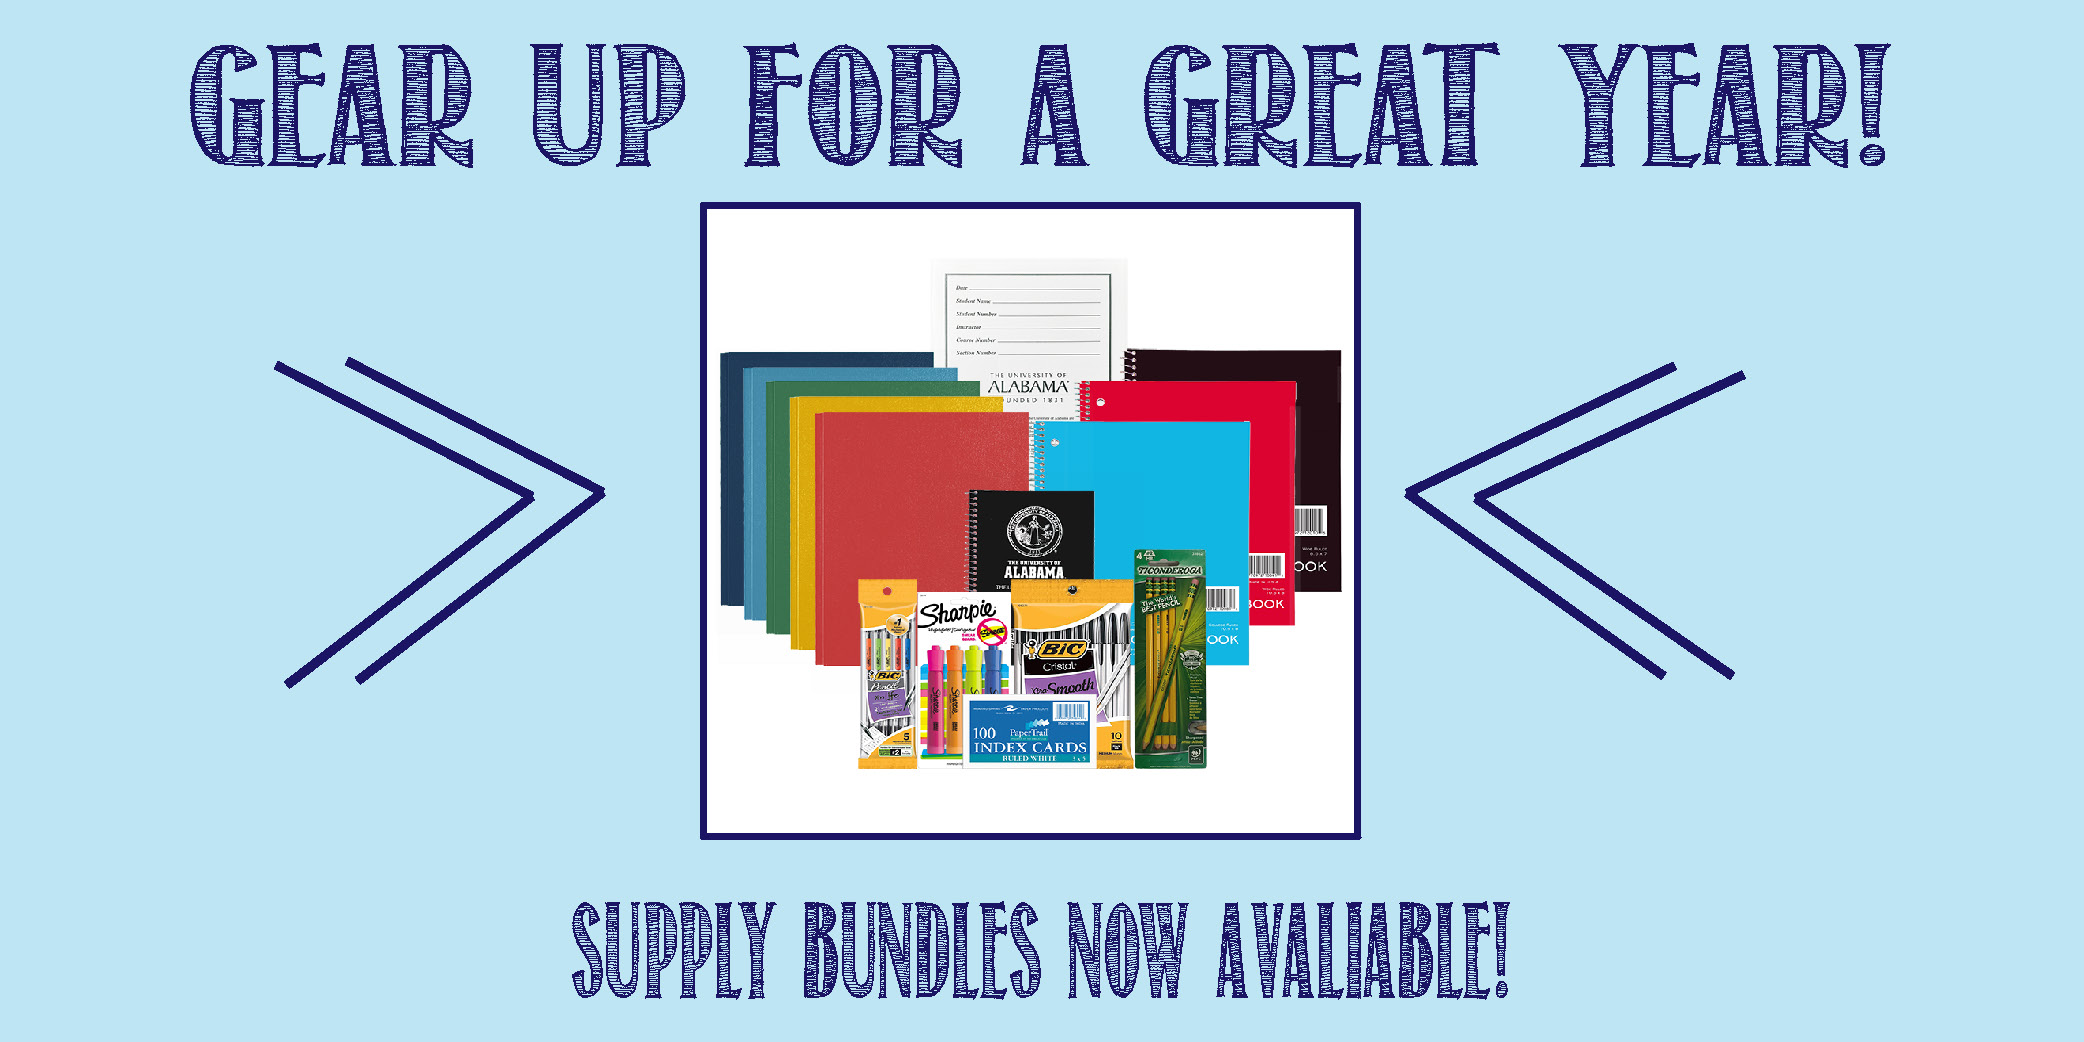 Gear up for a great year!  Supply Bundles now available.